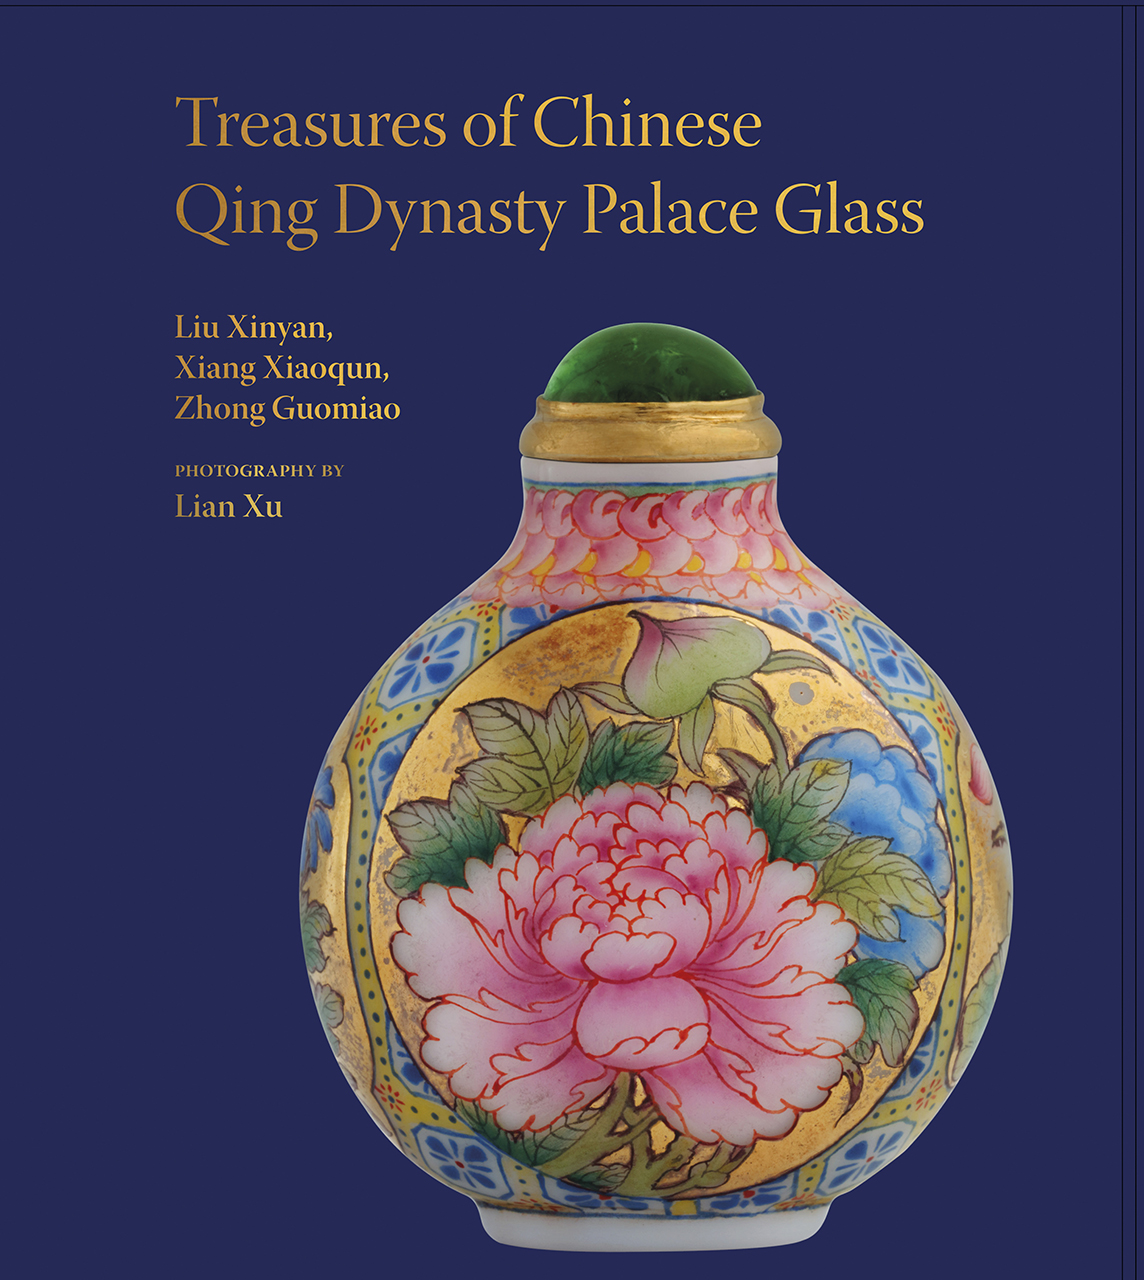 Treasures of the Chinese Qing Dynasty Palace Glass